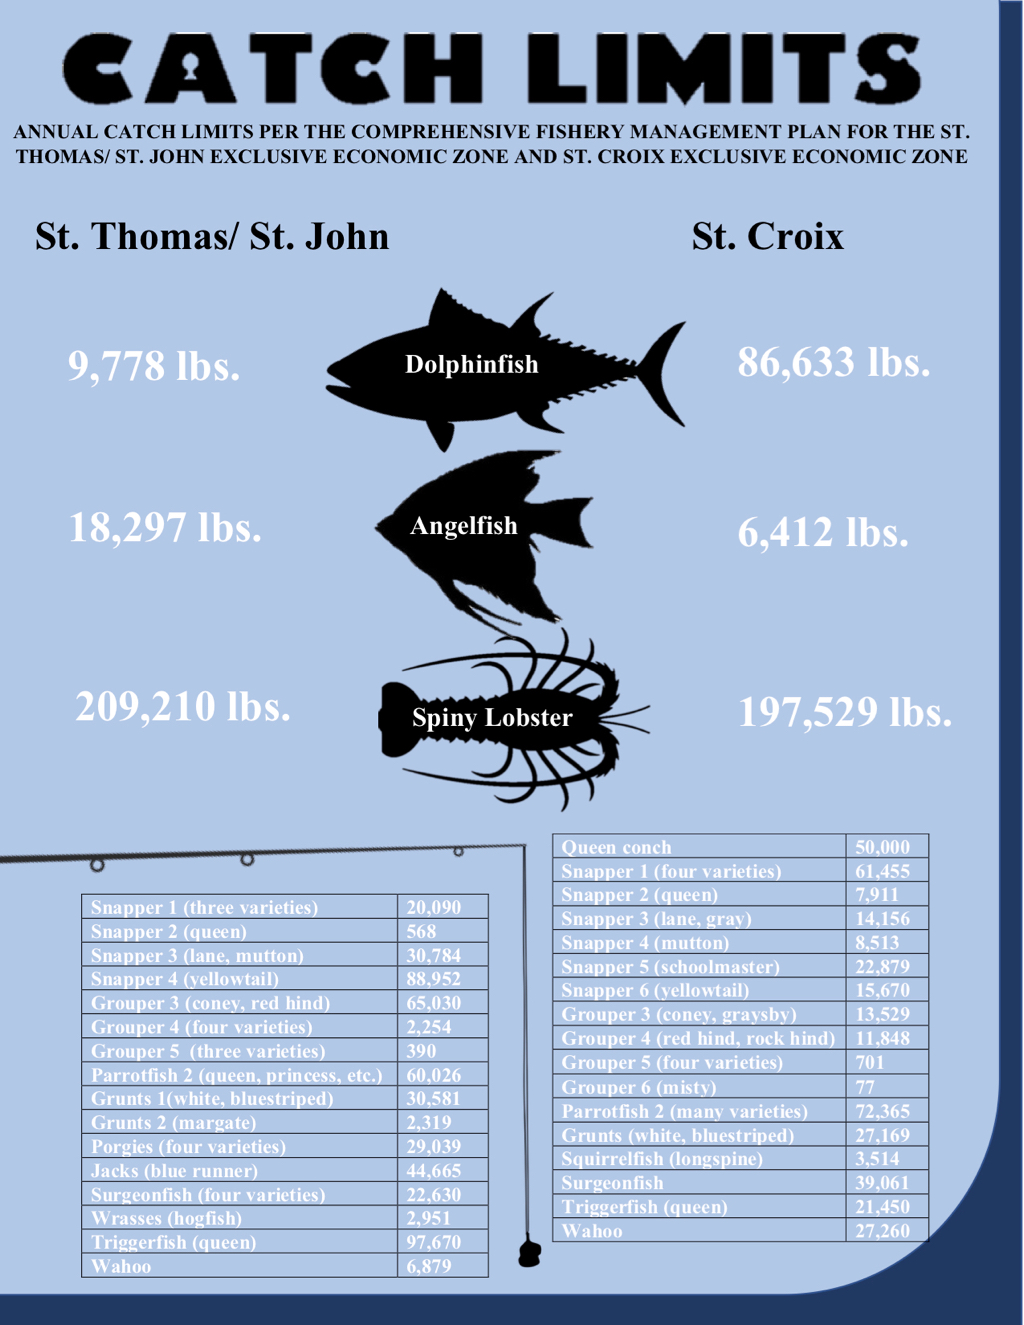 V.I. Caribbean Fishery Management Council proposes new catch limits for each jurisdiction. (Graphic by Bethaney Lee)